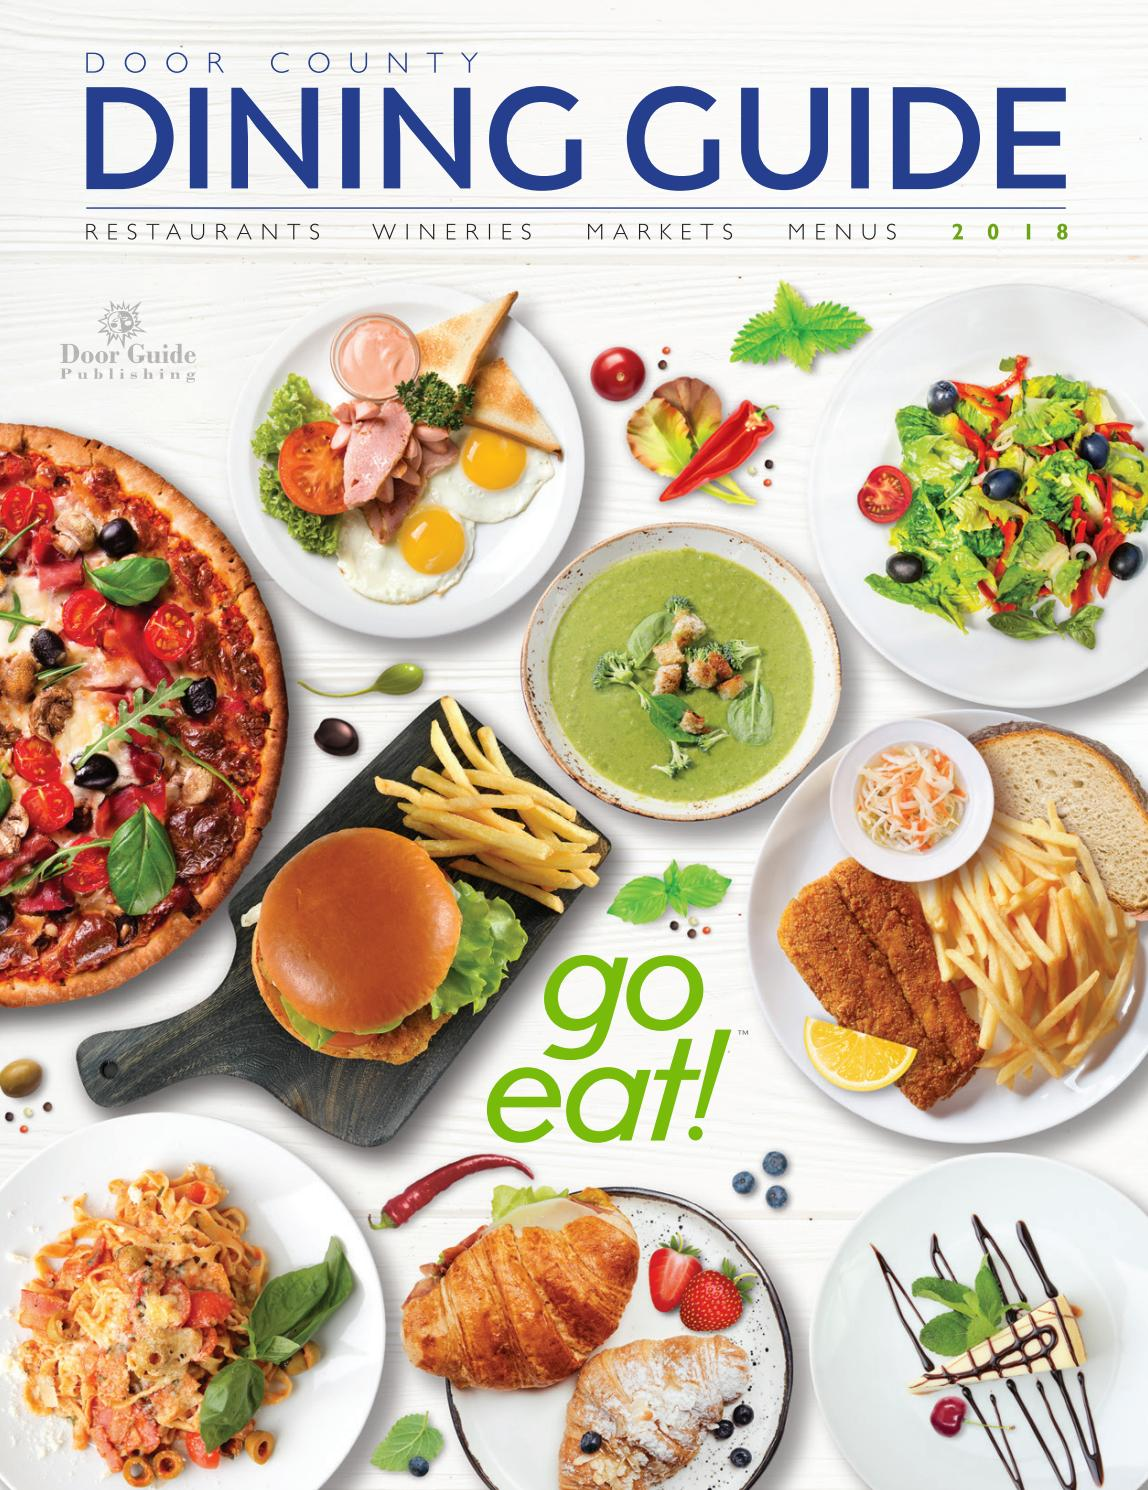 La Cocina Restaurant Fox Lake Il 2018 Door County Dining Guide By Door Guide Publishing Issuu